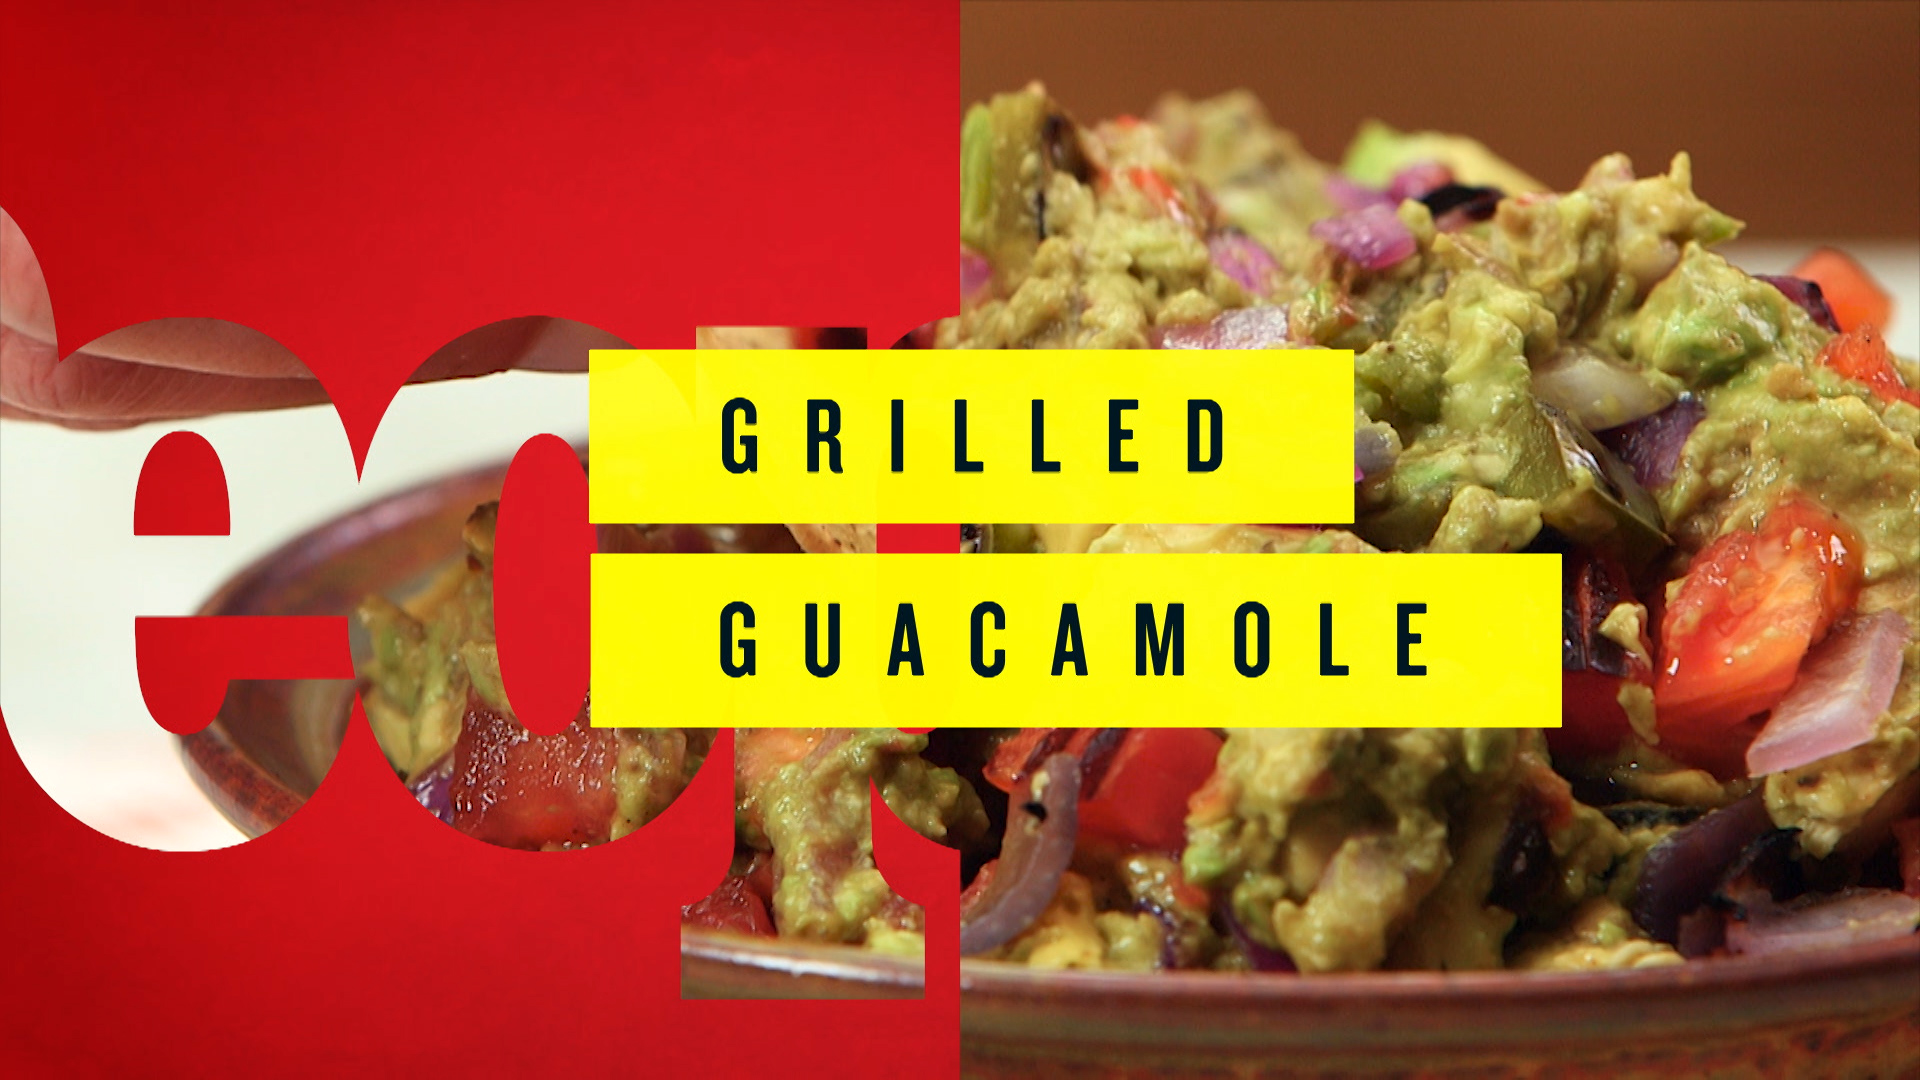 How to Make the Perfect Grilled Guacamole for Your Super Bowl Party